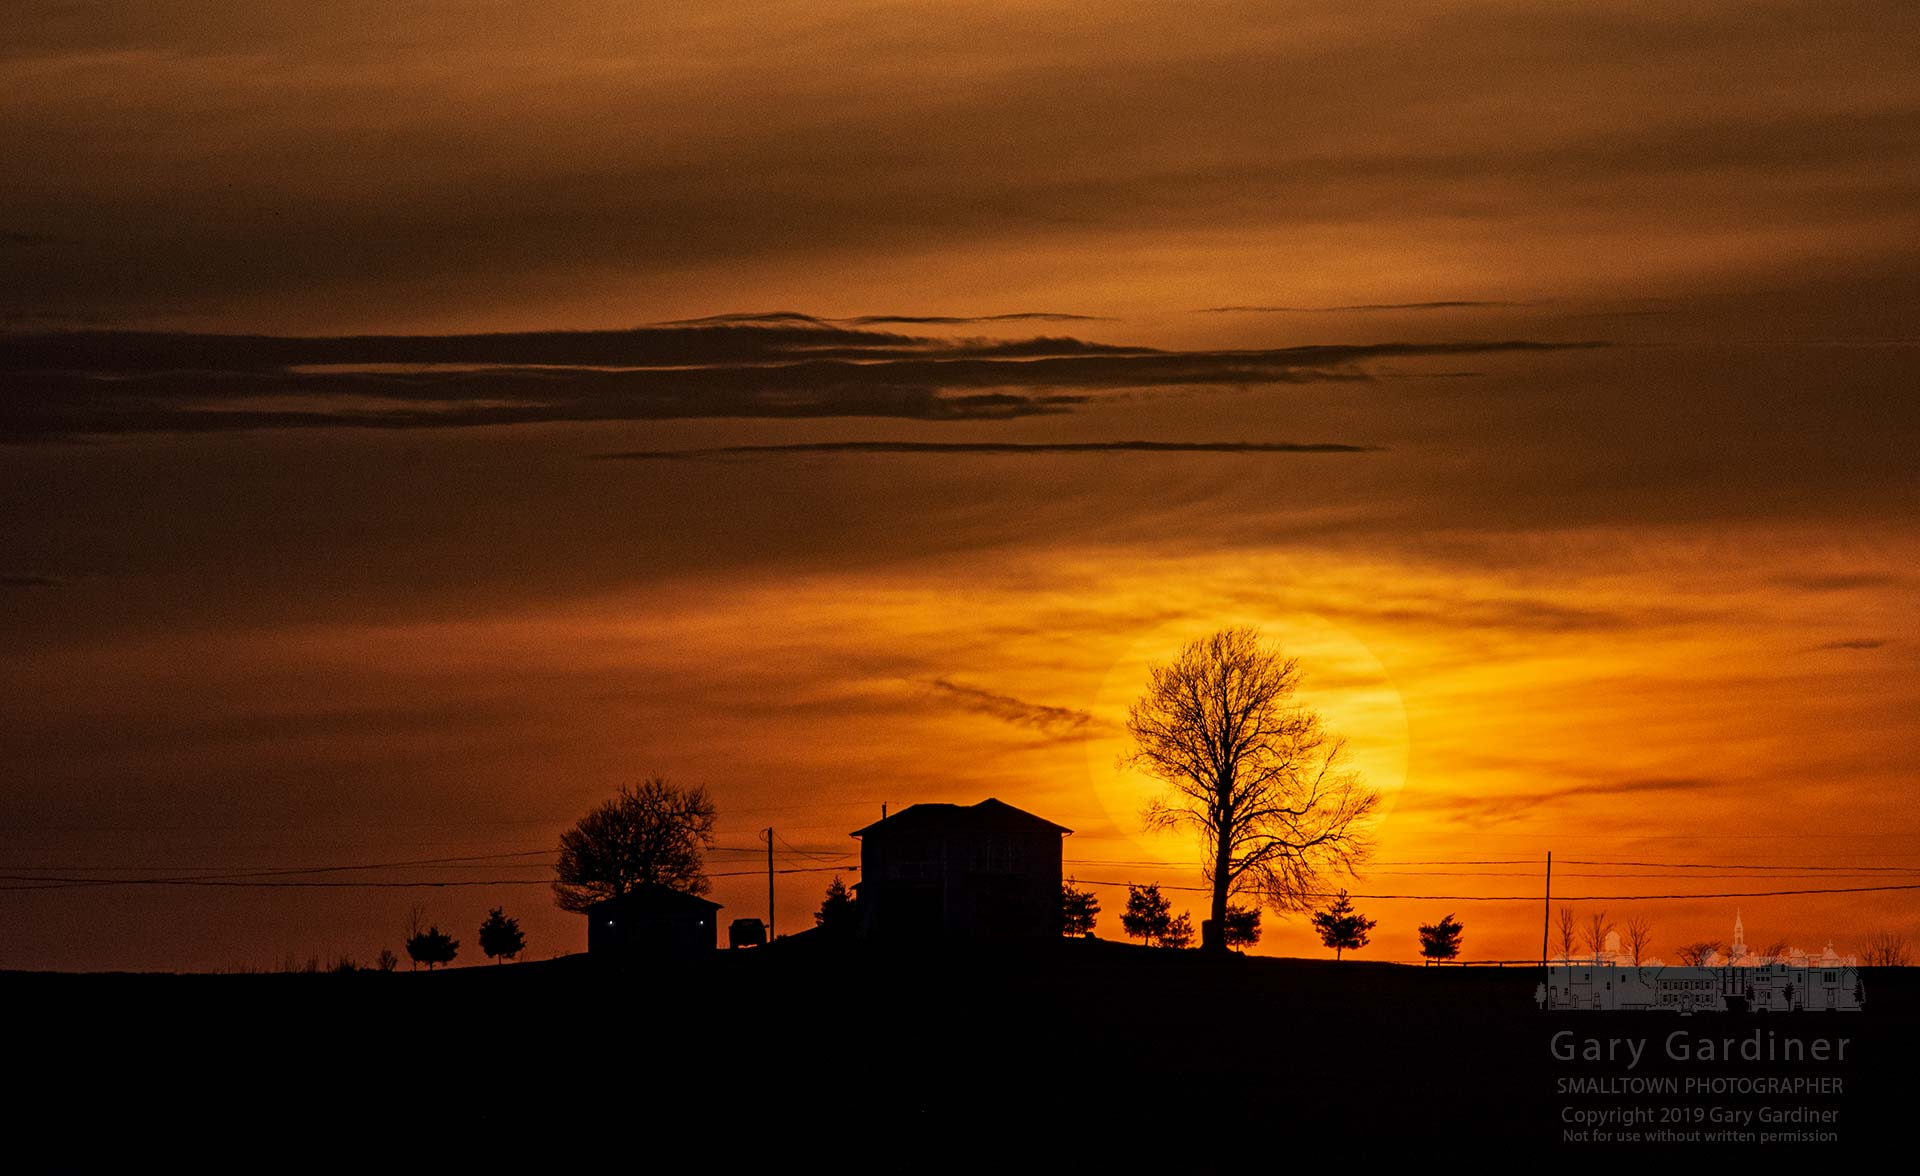 A thin cloud layer partially obscures the setting sun behind a house in farm fields near Croton, Ohio. My Final Photo for April 13, 2019.